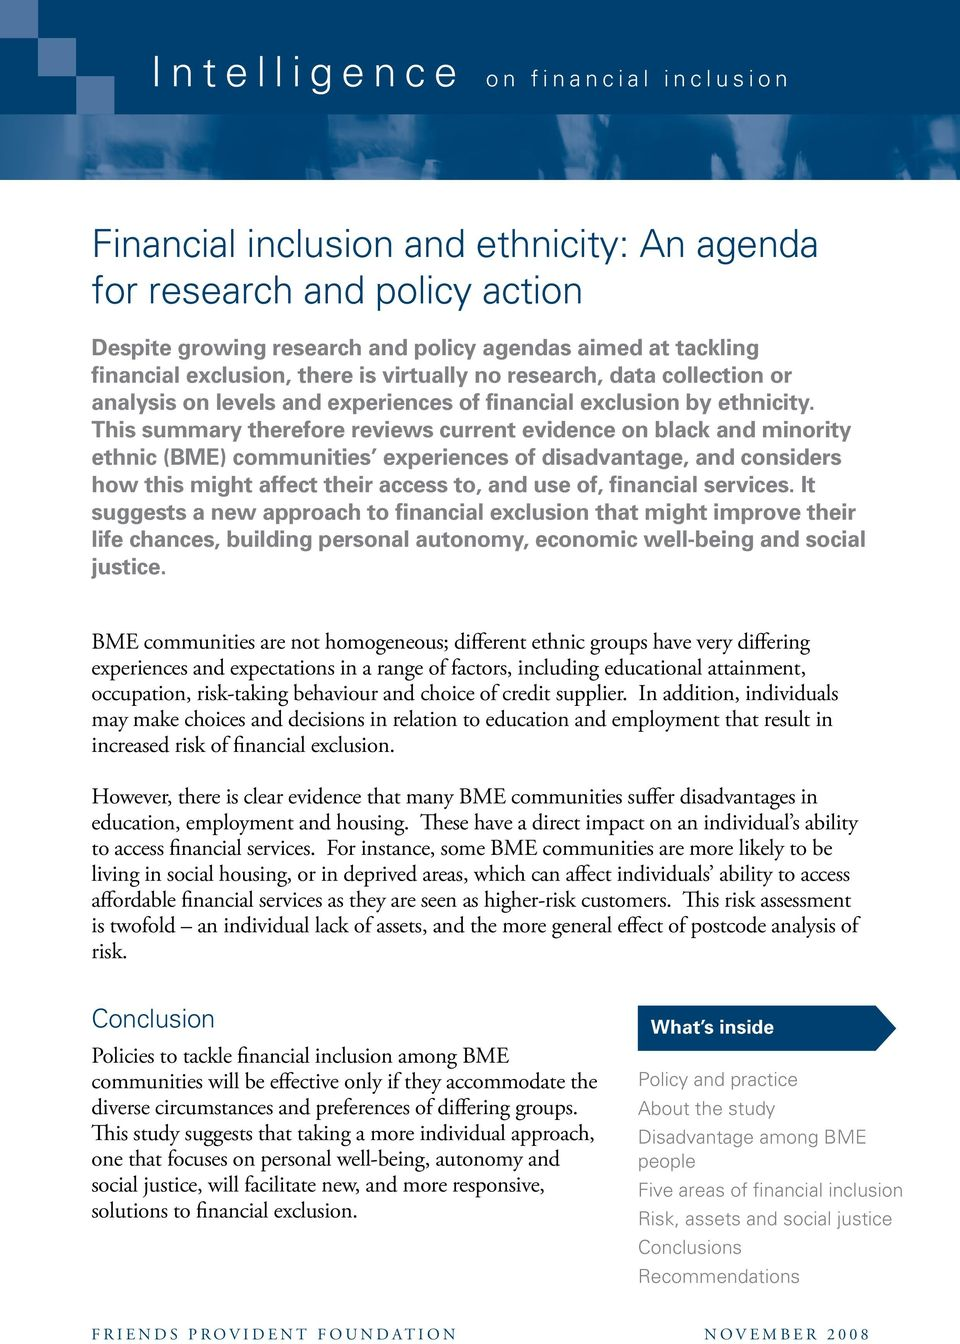 This summary therefore reviews current evidence on black and minority ethnic (BME) communities experiences of disadvantage, and considers how this might affect their access to, and use of, financial